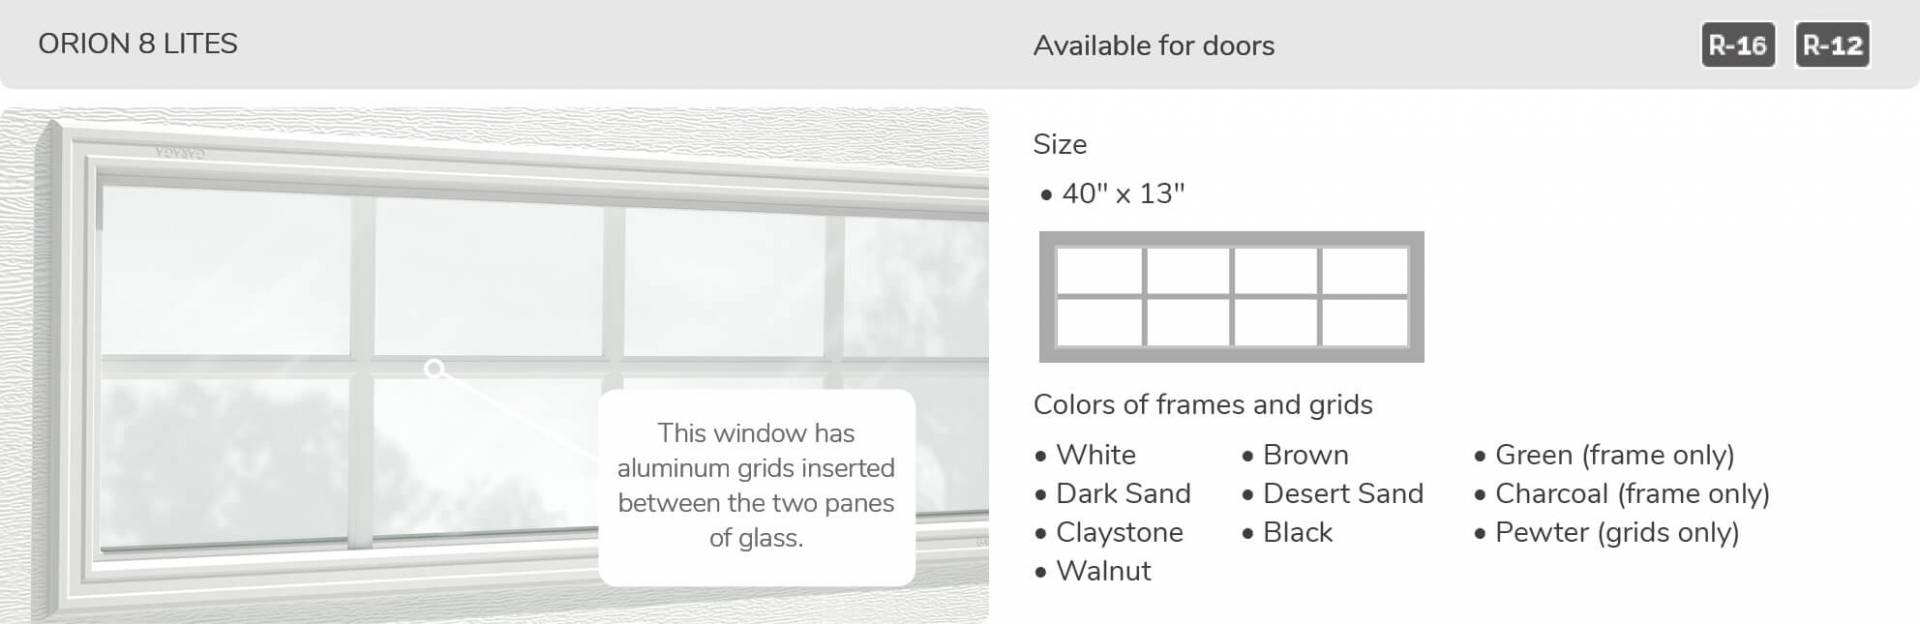 "Orion 8 Lites, 40"" x 13"", available for doors R-16, R-12"